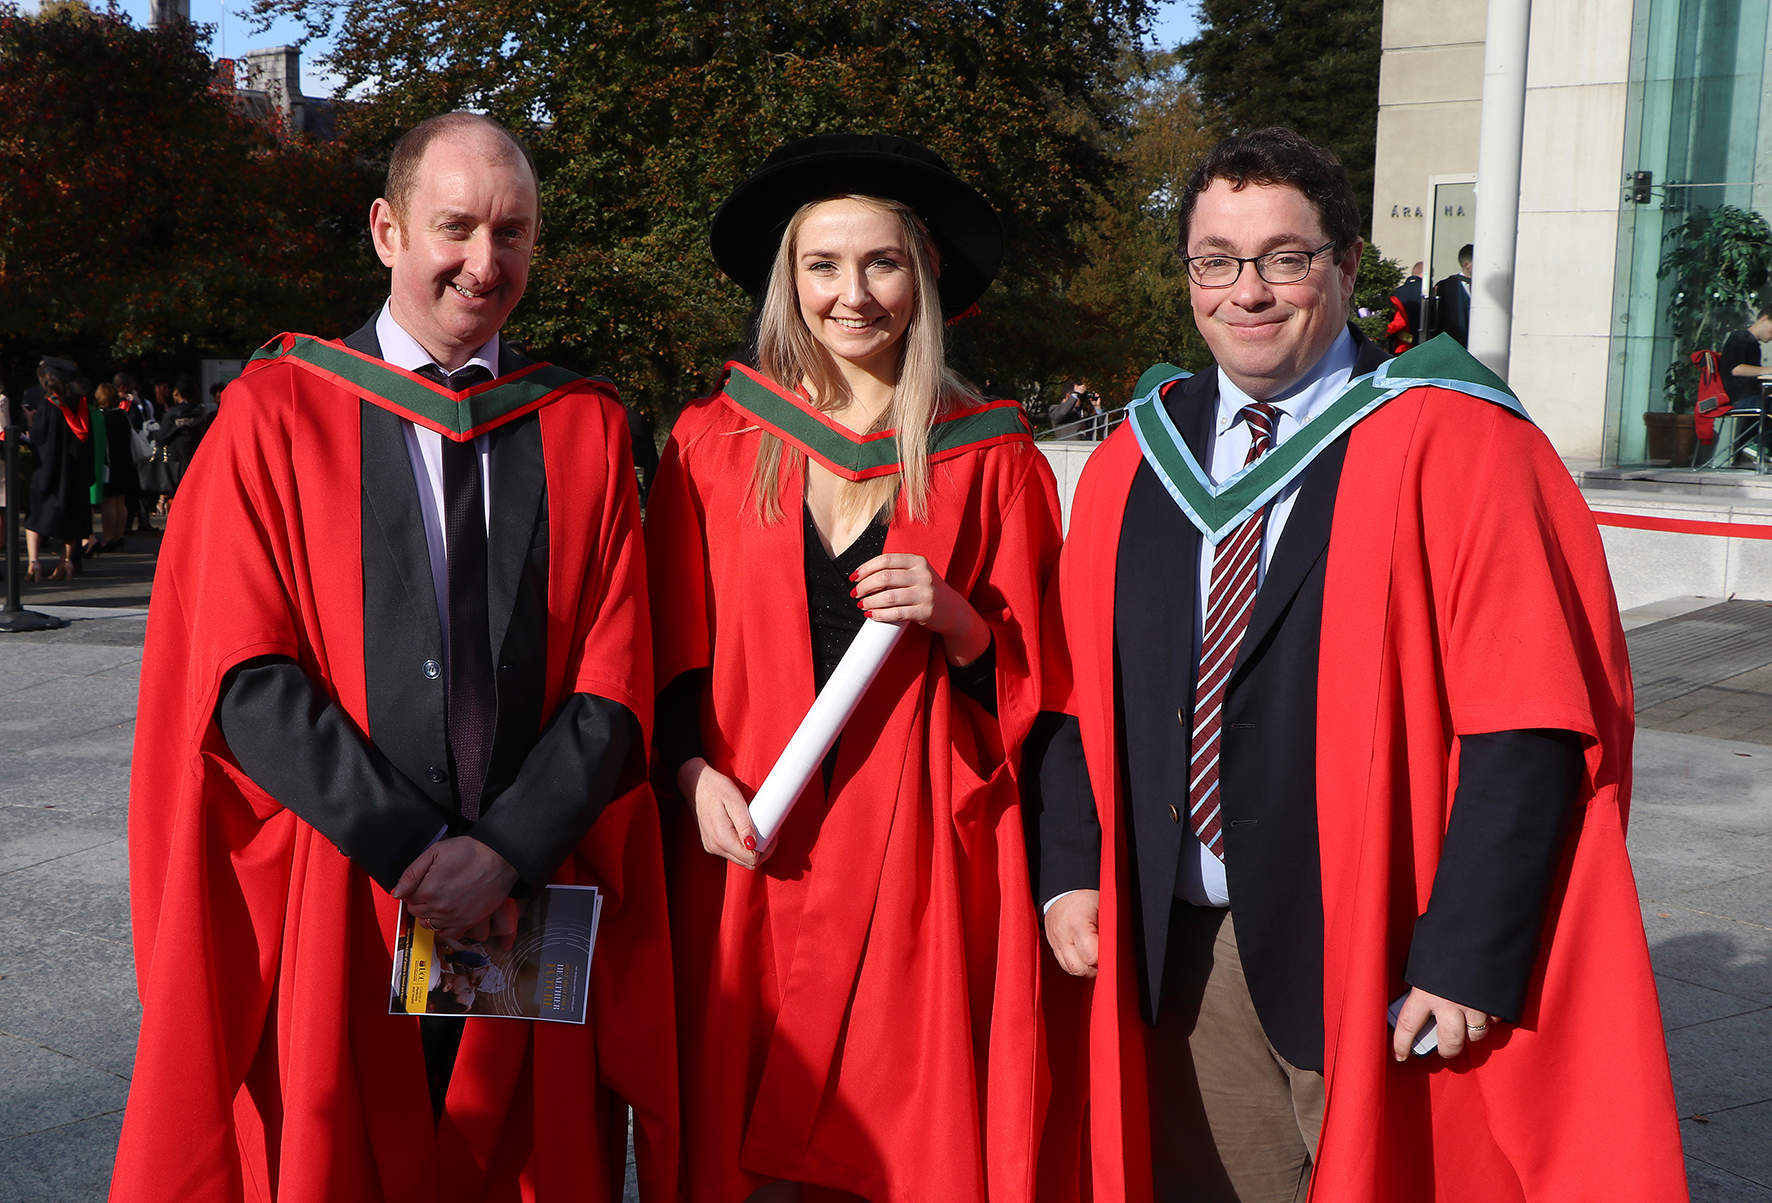 Hons BSc Neuroscience Graduate Katie Togher is conferred with PhD in Neuroscience